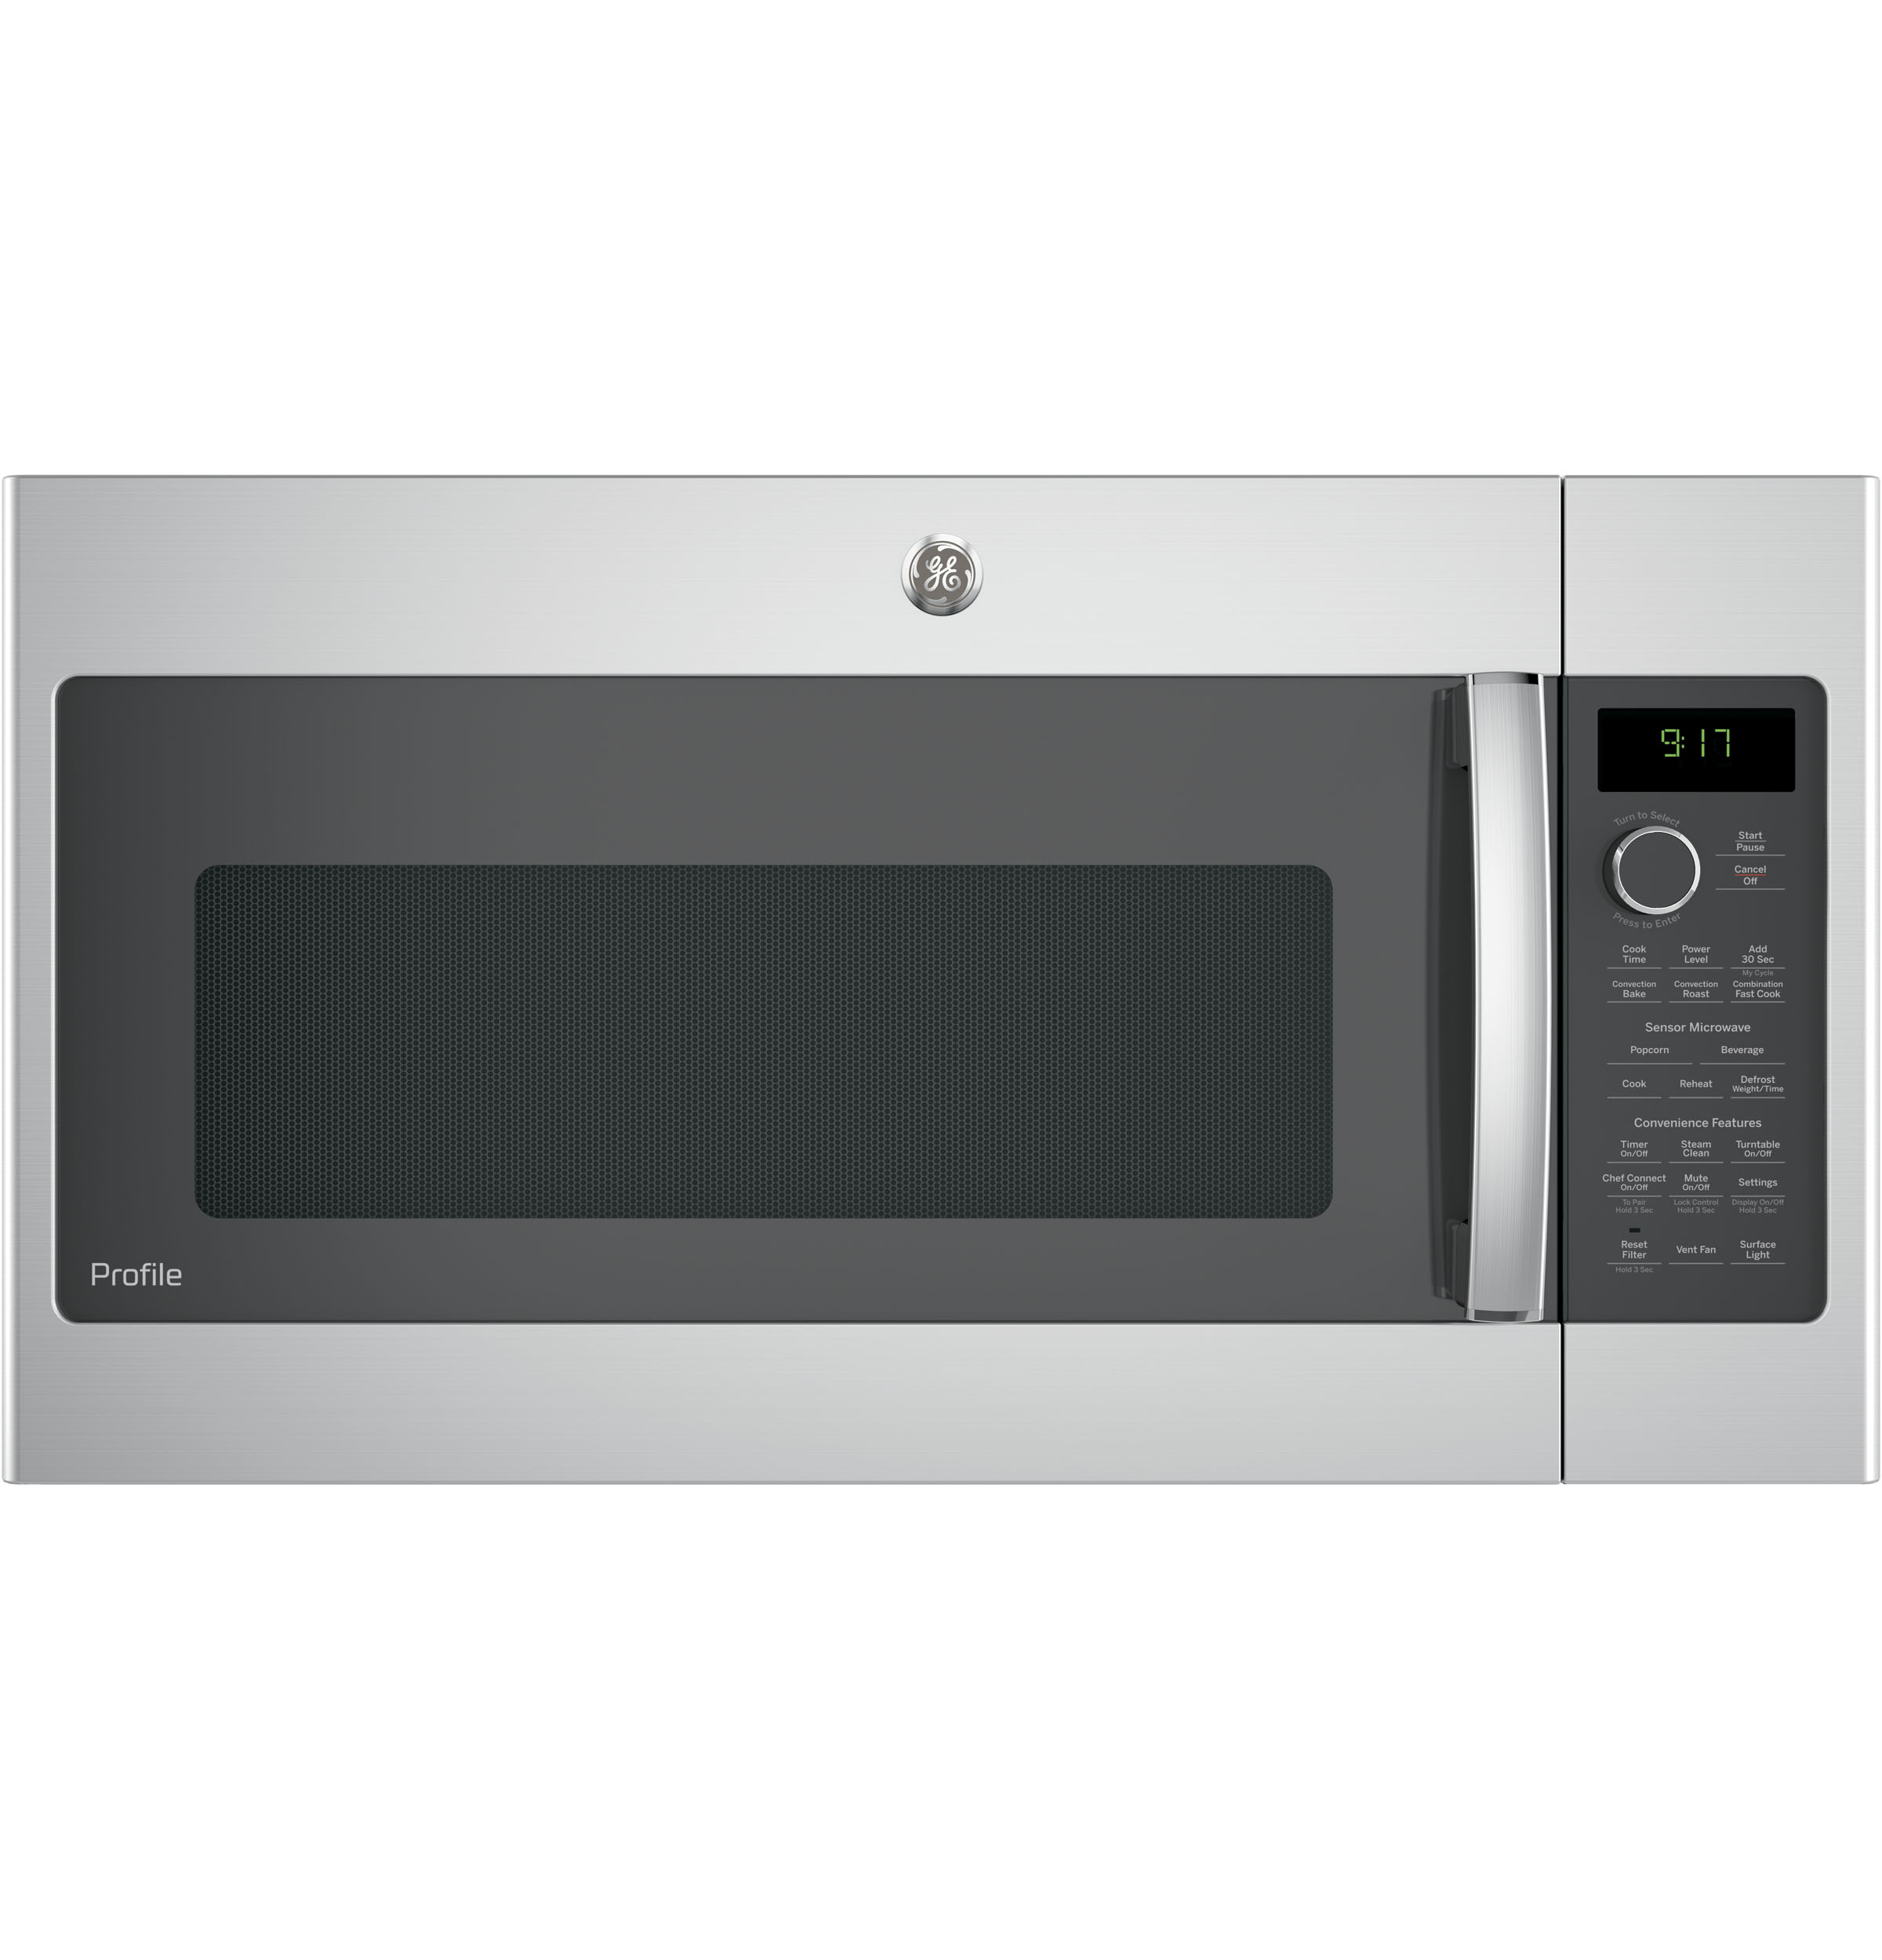 GE Profile GE Profile™ 1.7 Cu. Ft. Convection Over-the-Range Microwave Oven